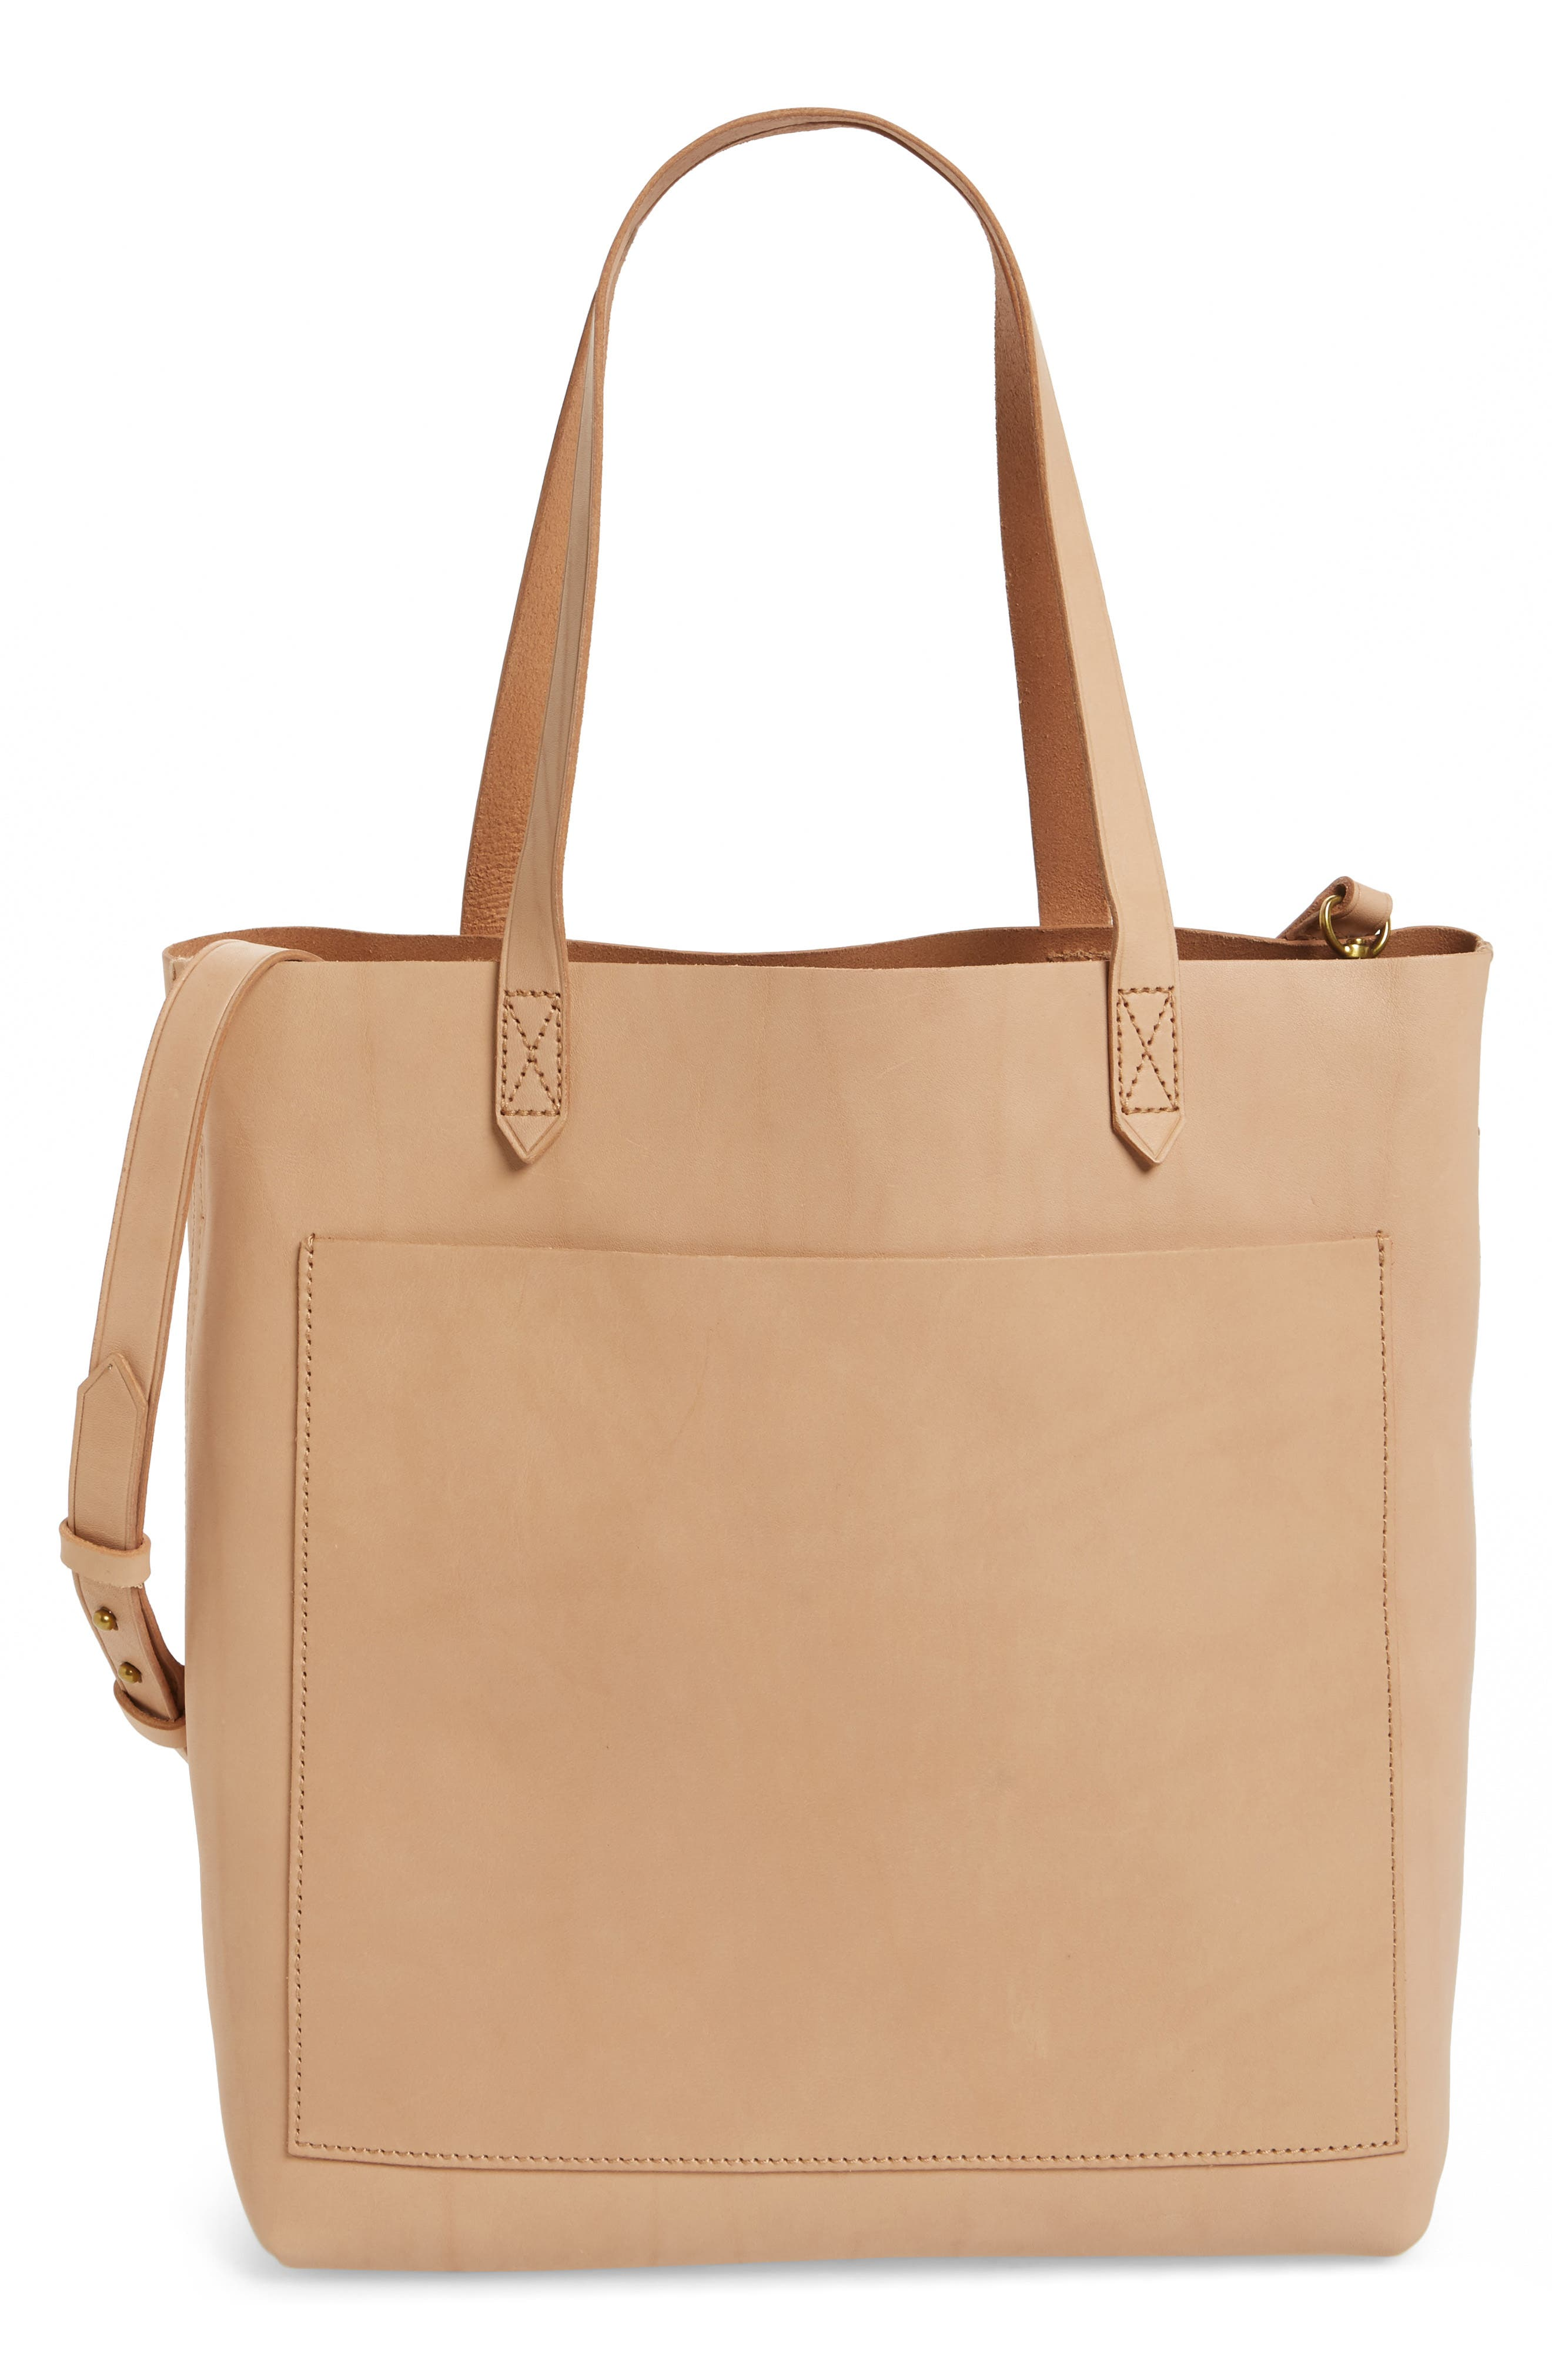 Medium Leather Transport Tote,                             Main thumbnail 18, color,